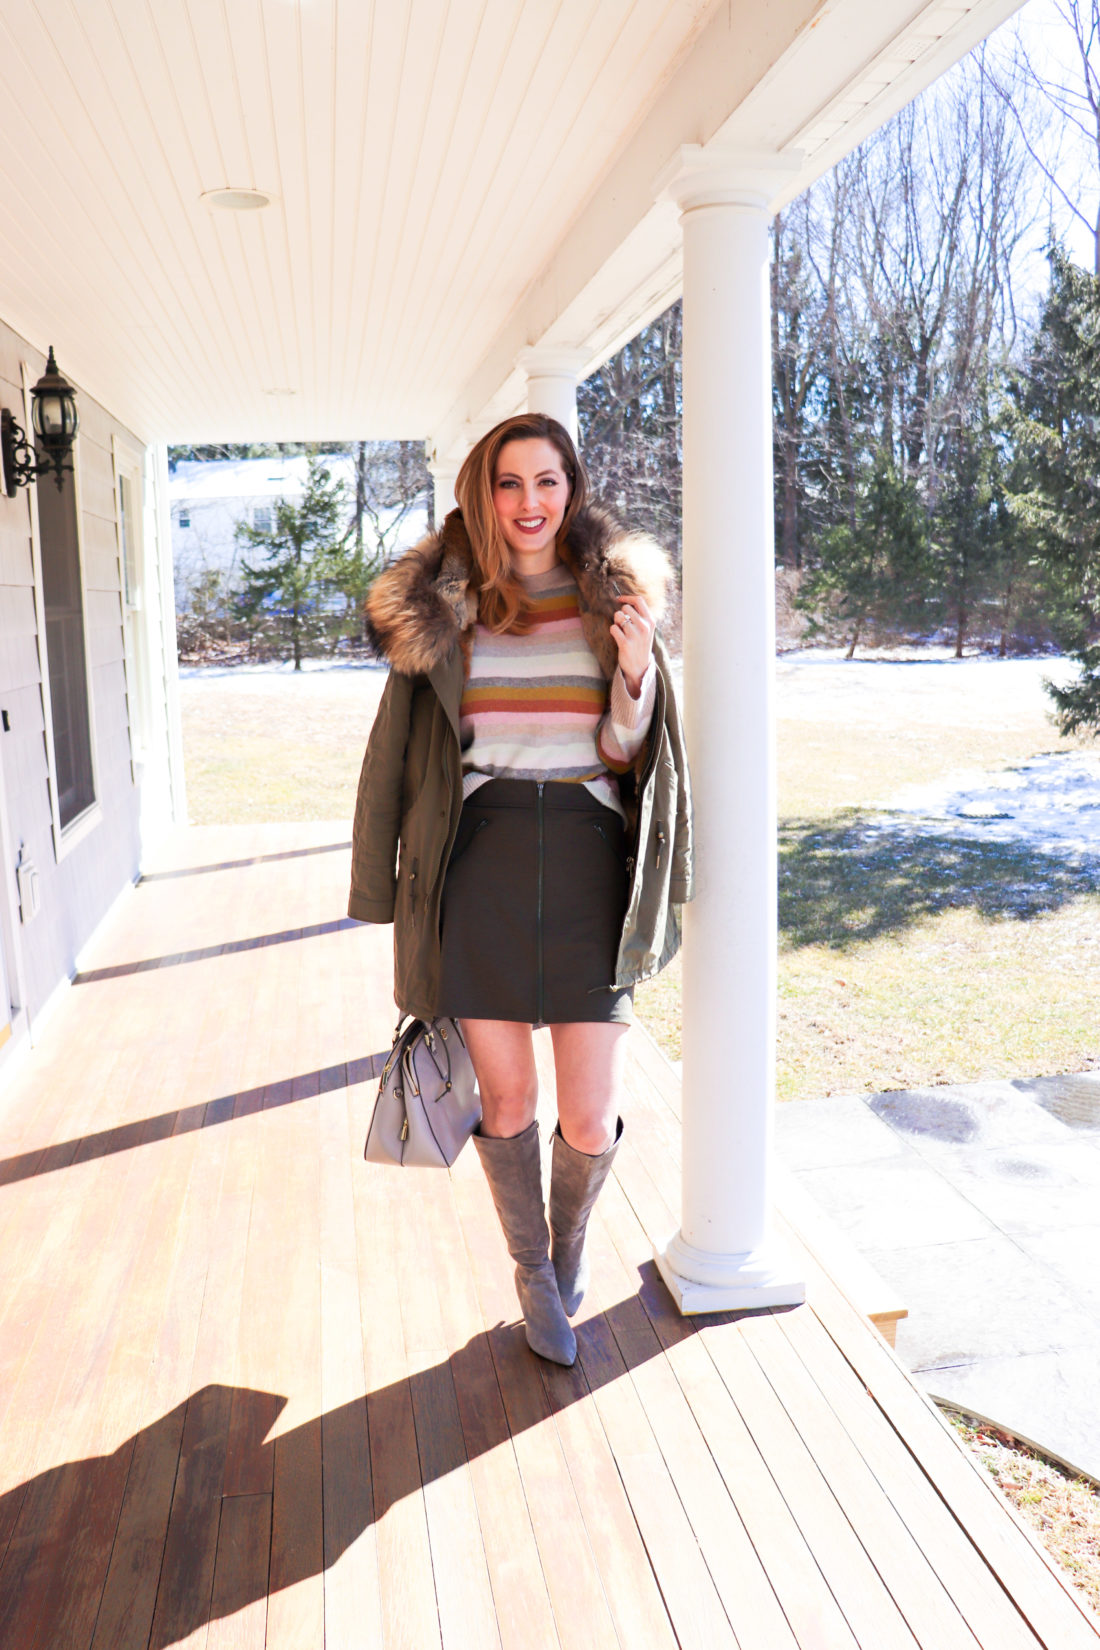 Eva Amurri Martino of Happily Eva After leaves her home for day